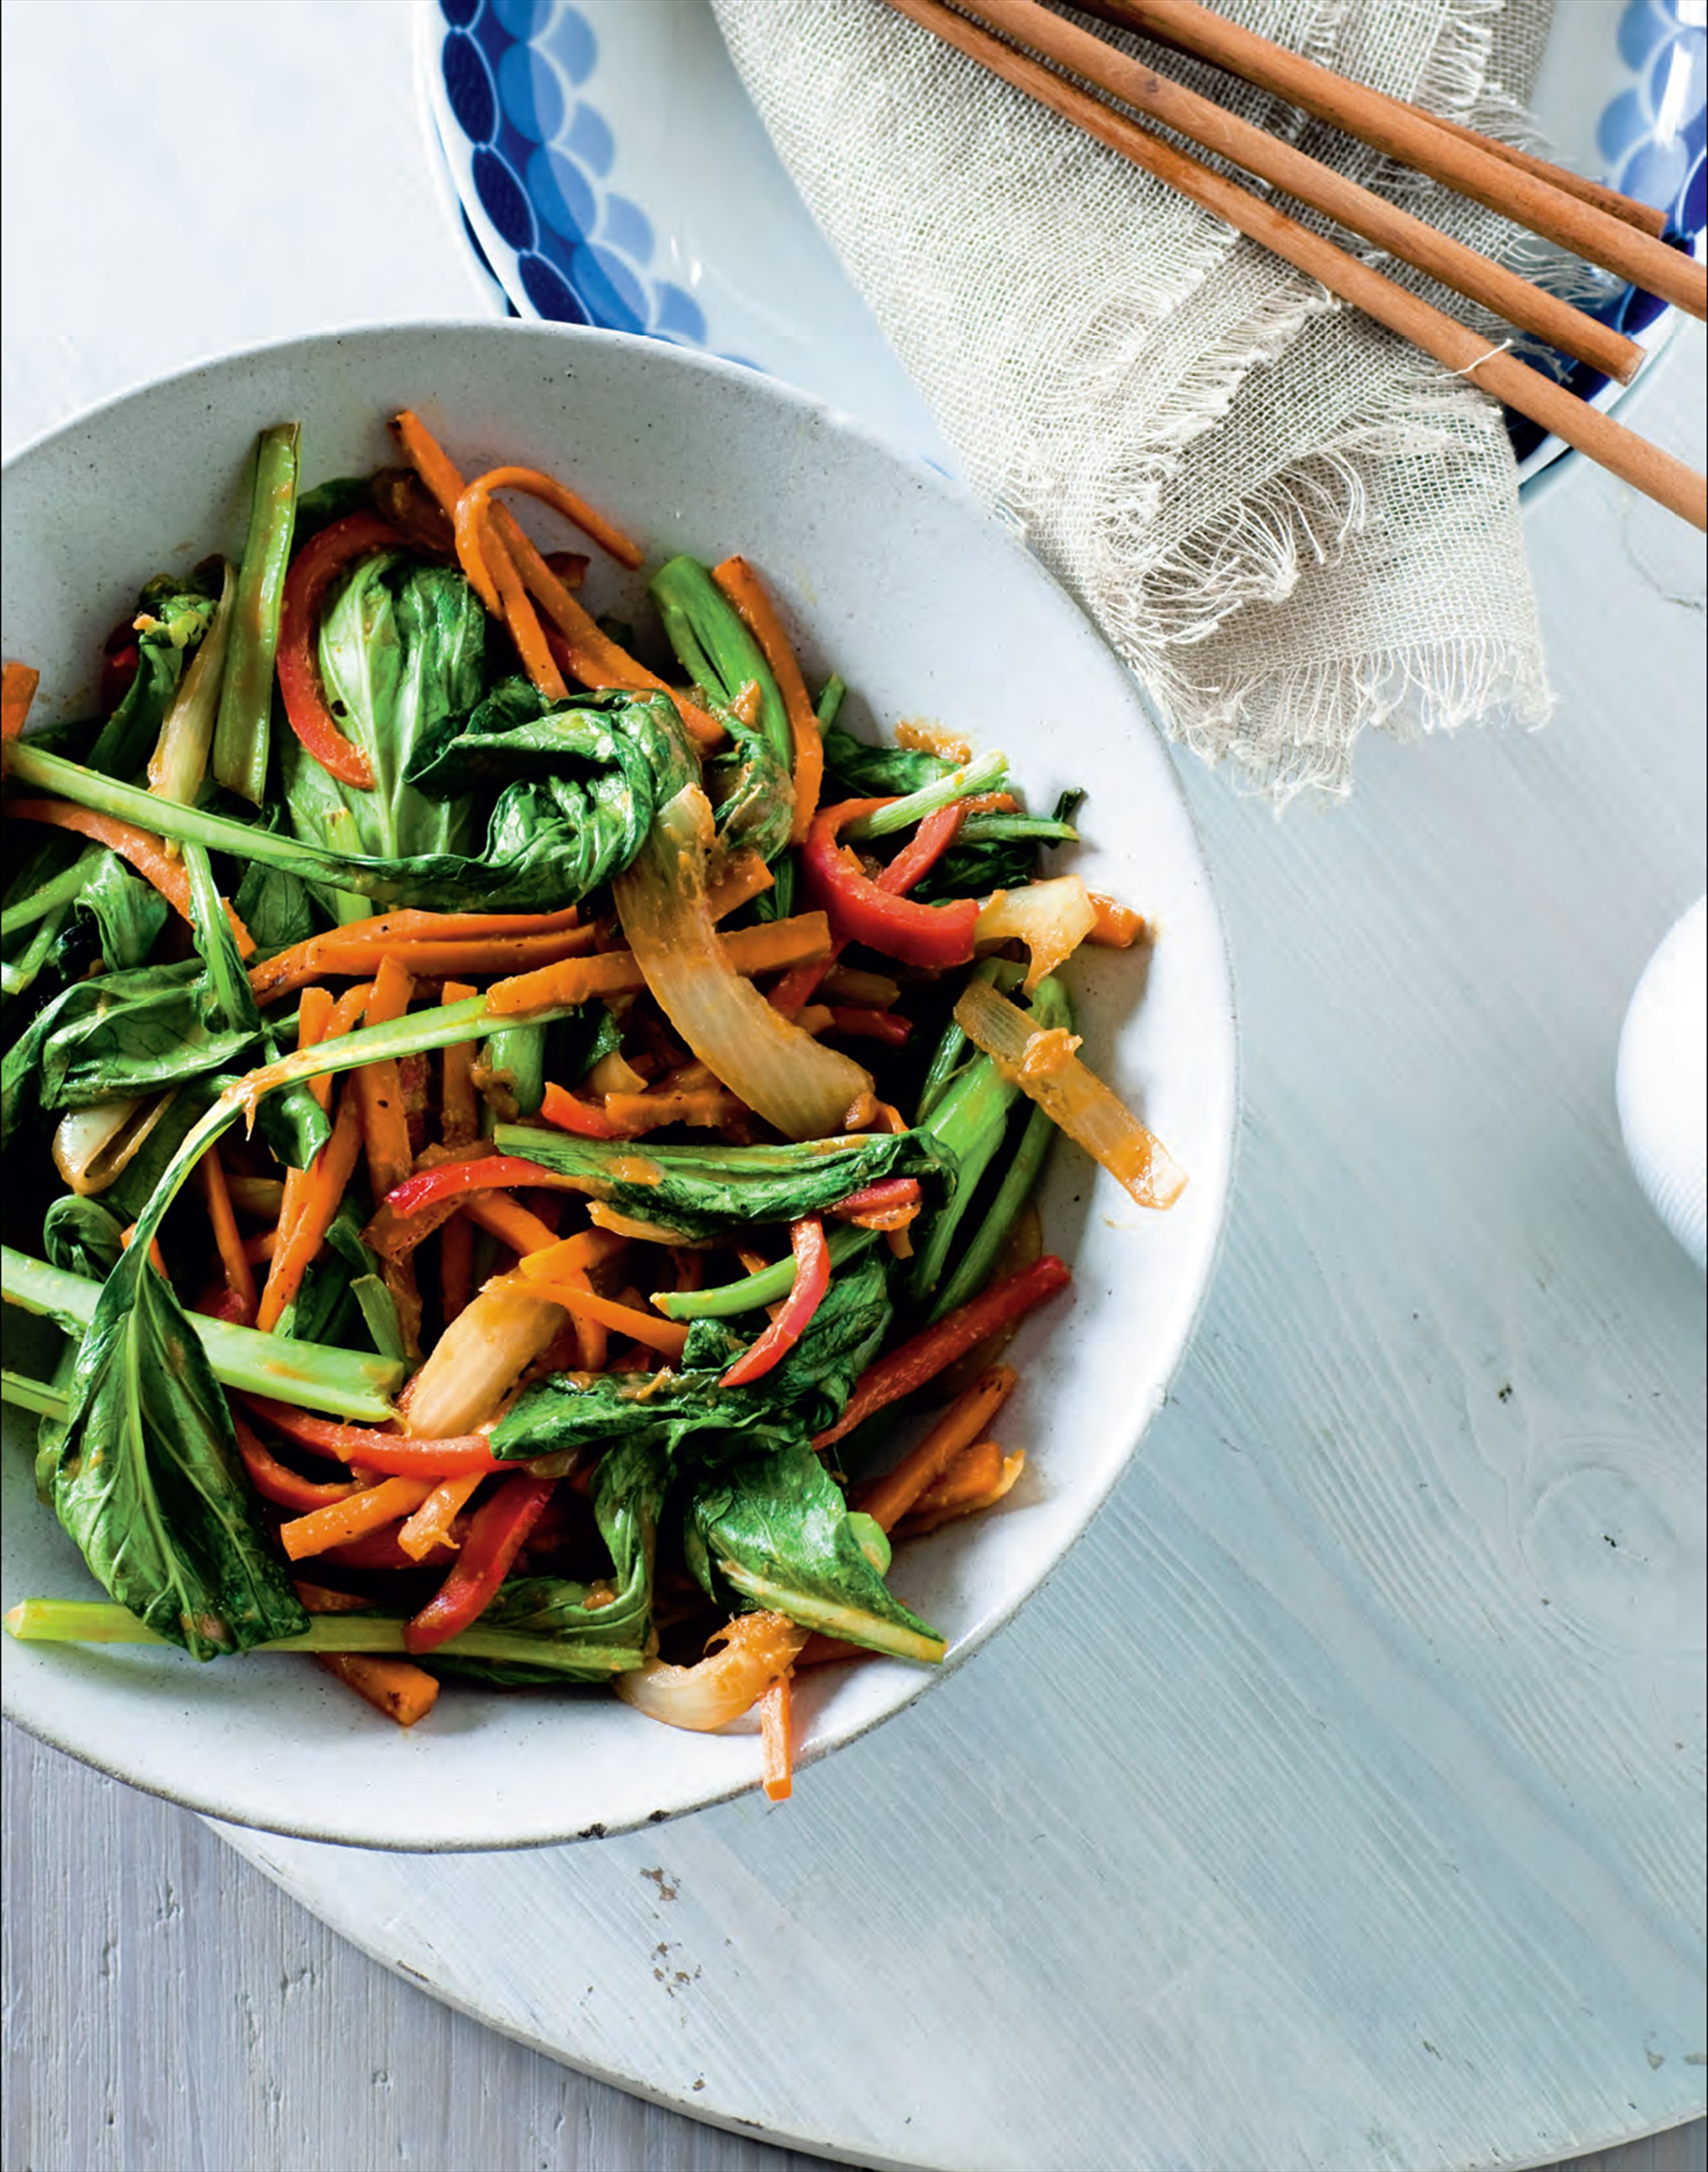 Vegetable stir-fry with miso